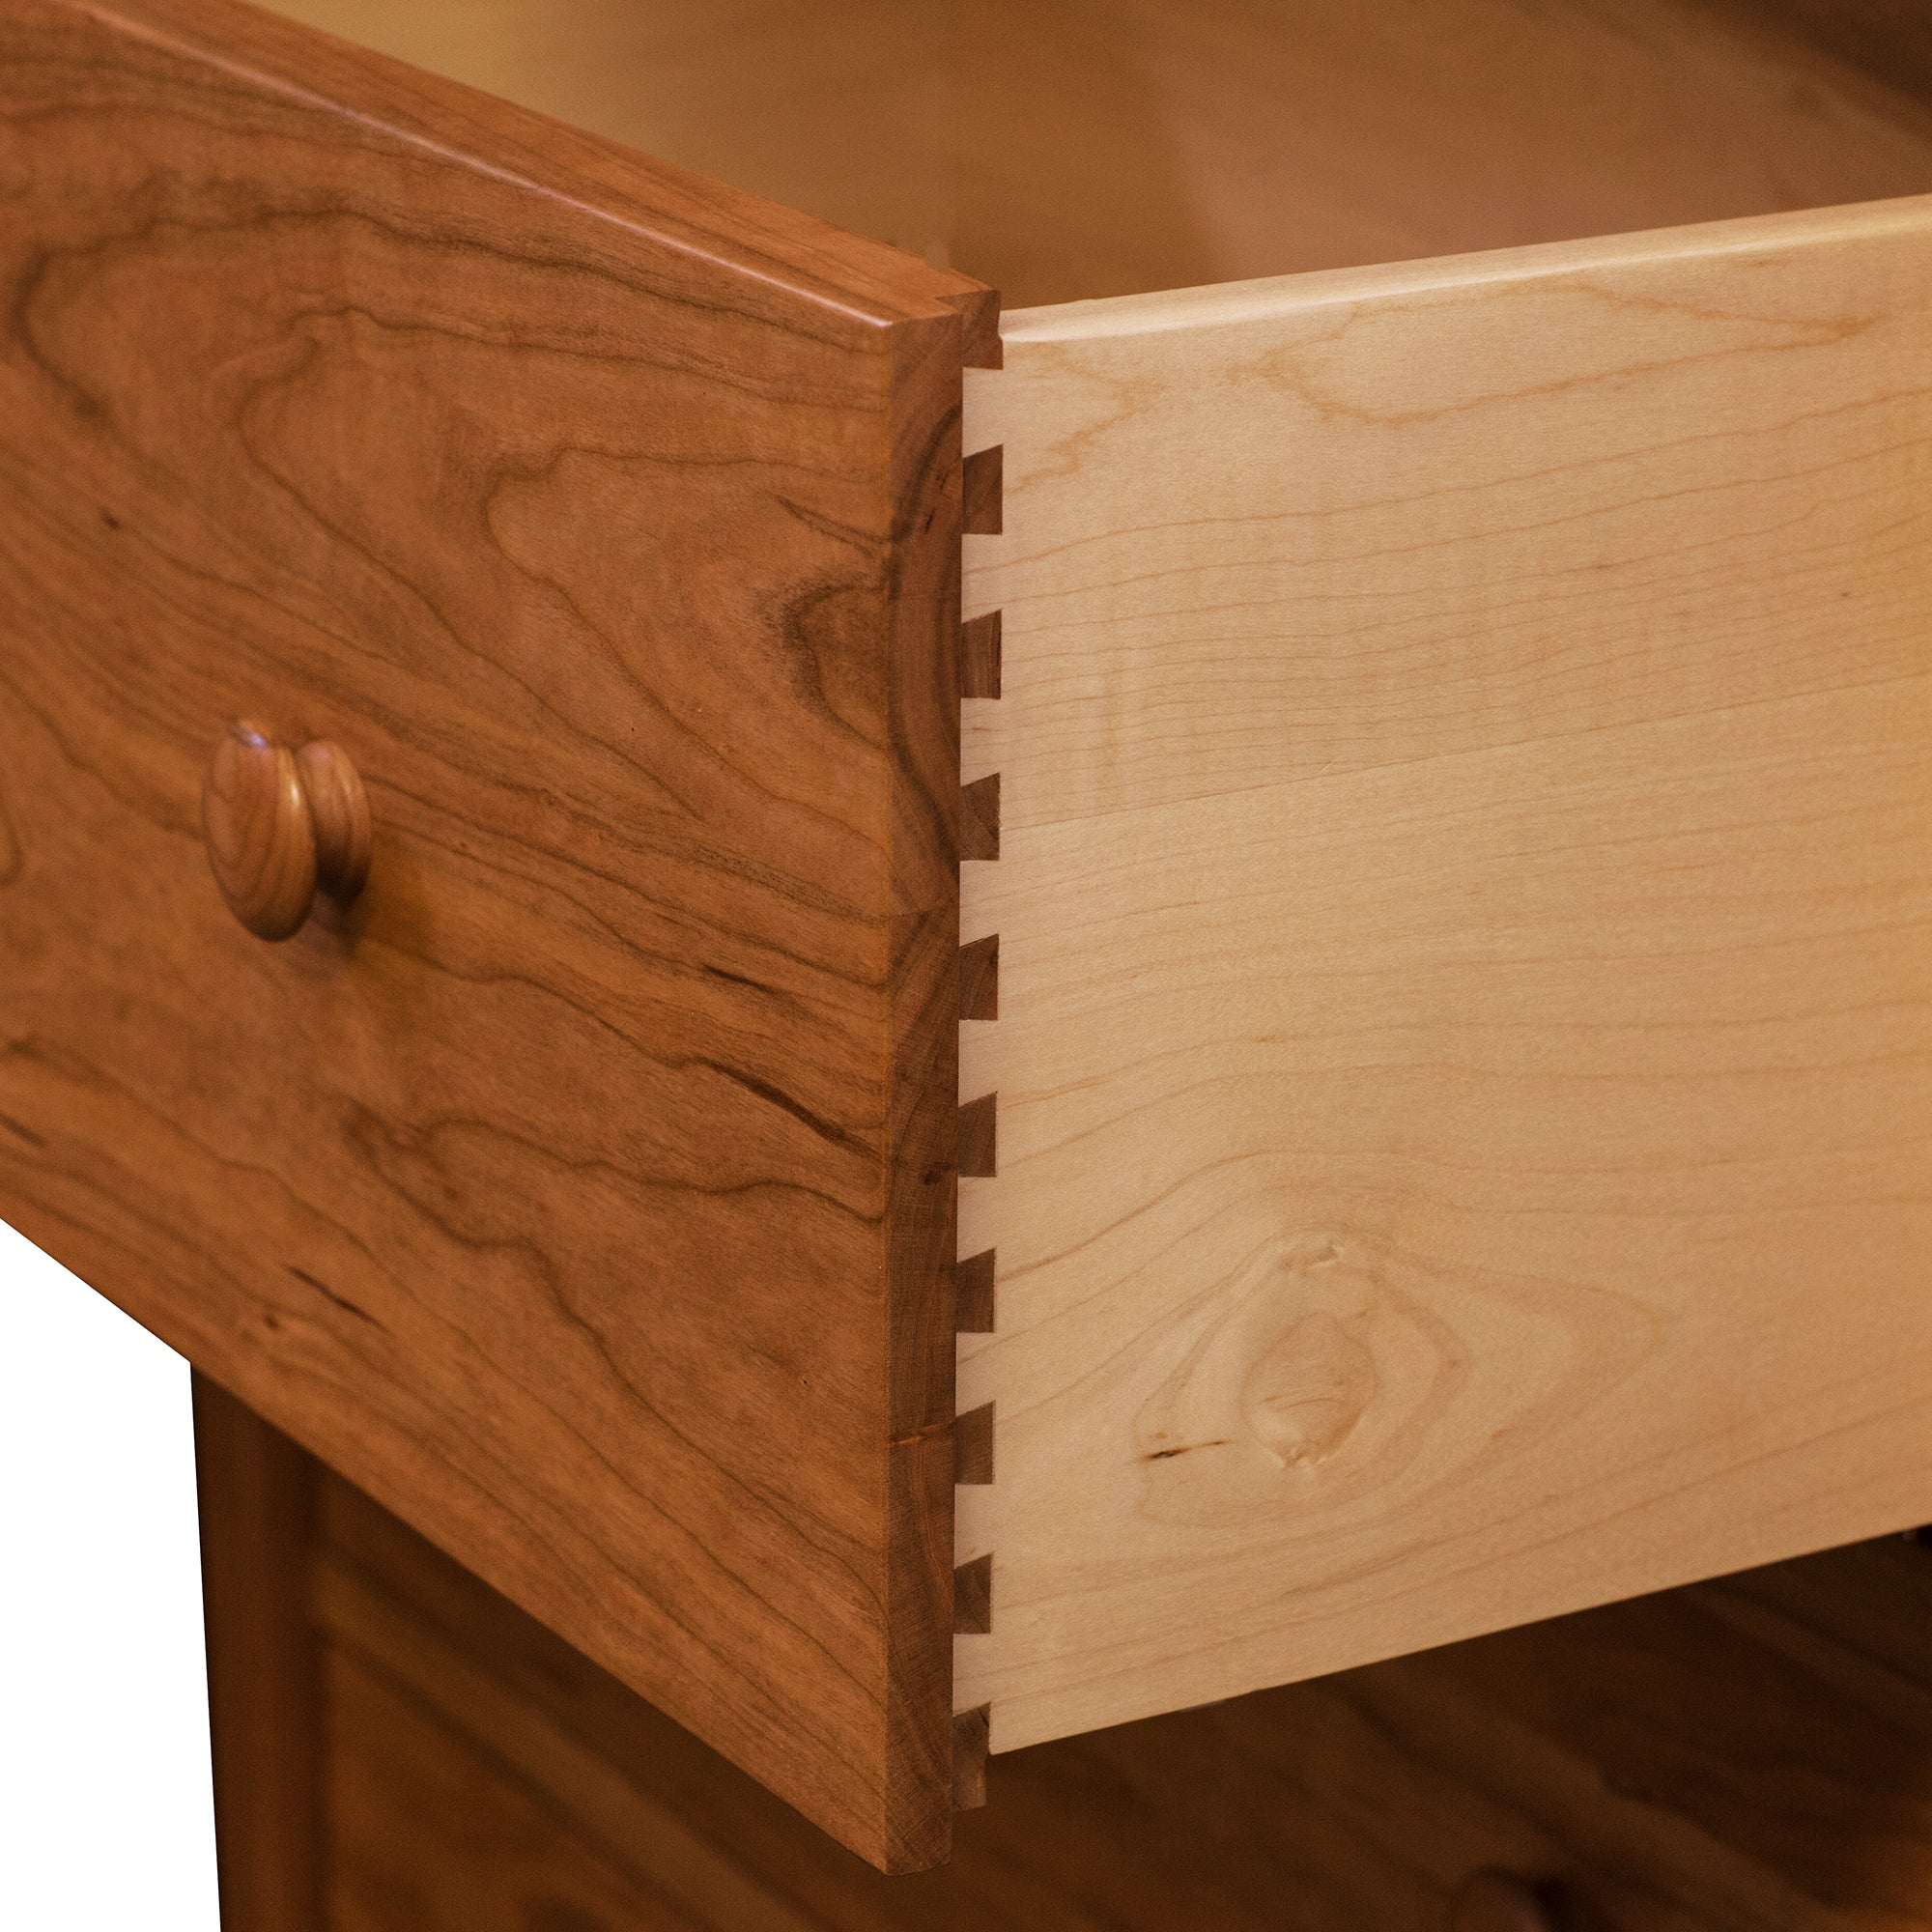 Open drawer of solid cherry Bethel Dresser showing dovetail joinery